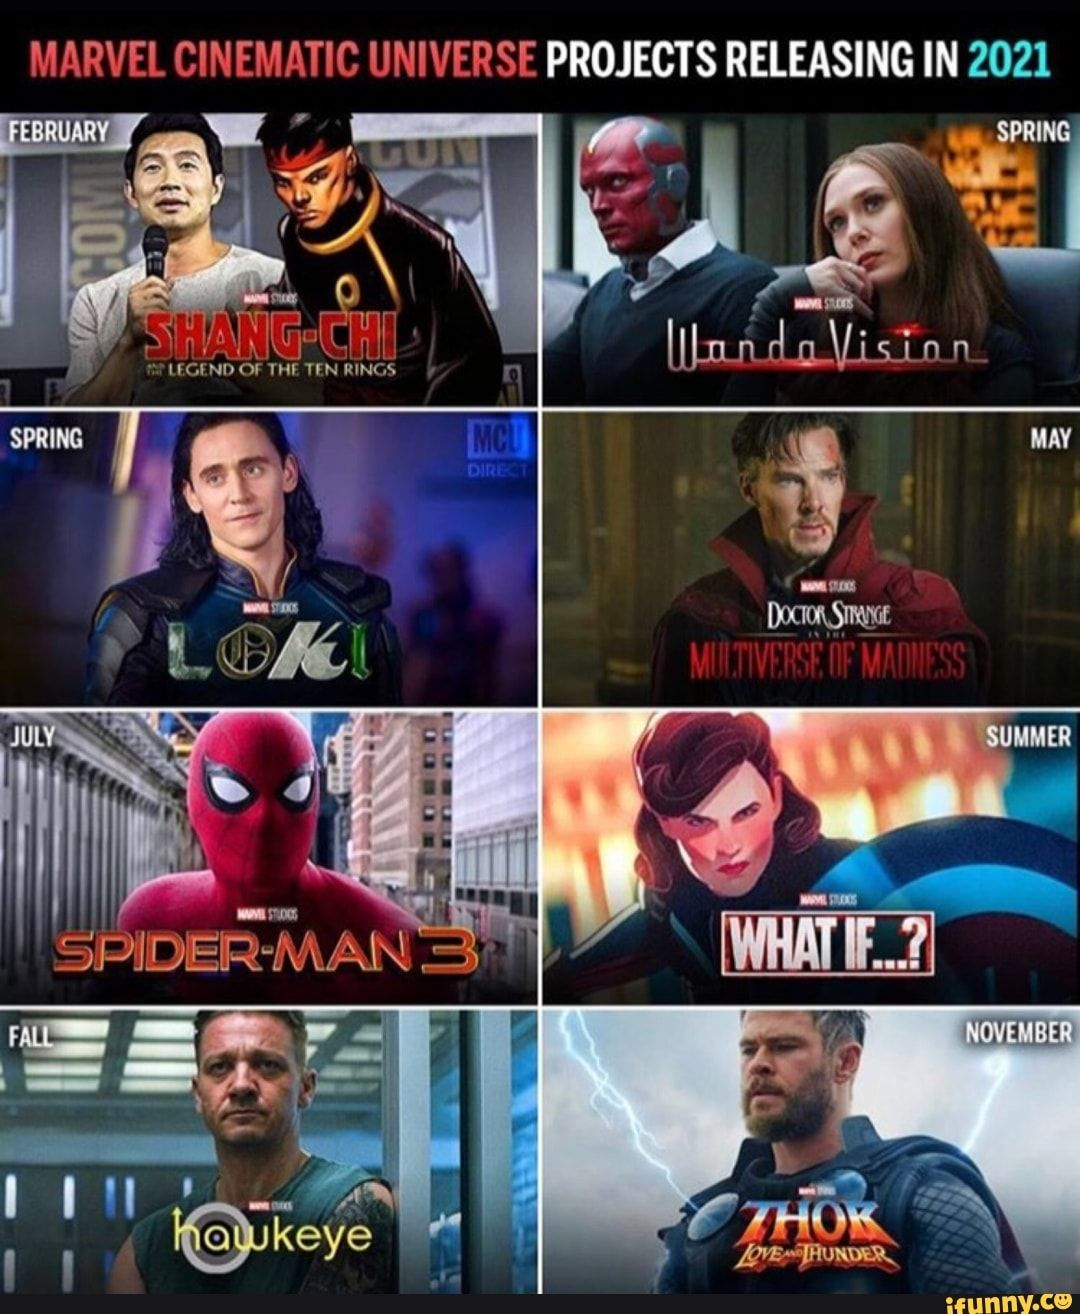 MARVEL CINEMATIC UNIVERSE PROJECTS RELEASING IN 2021